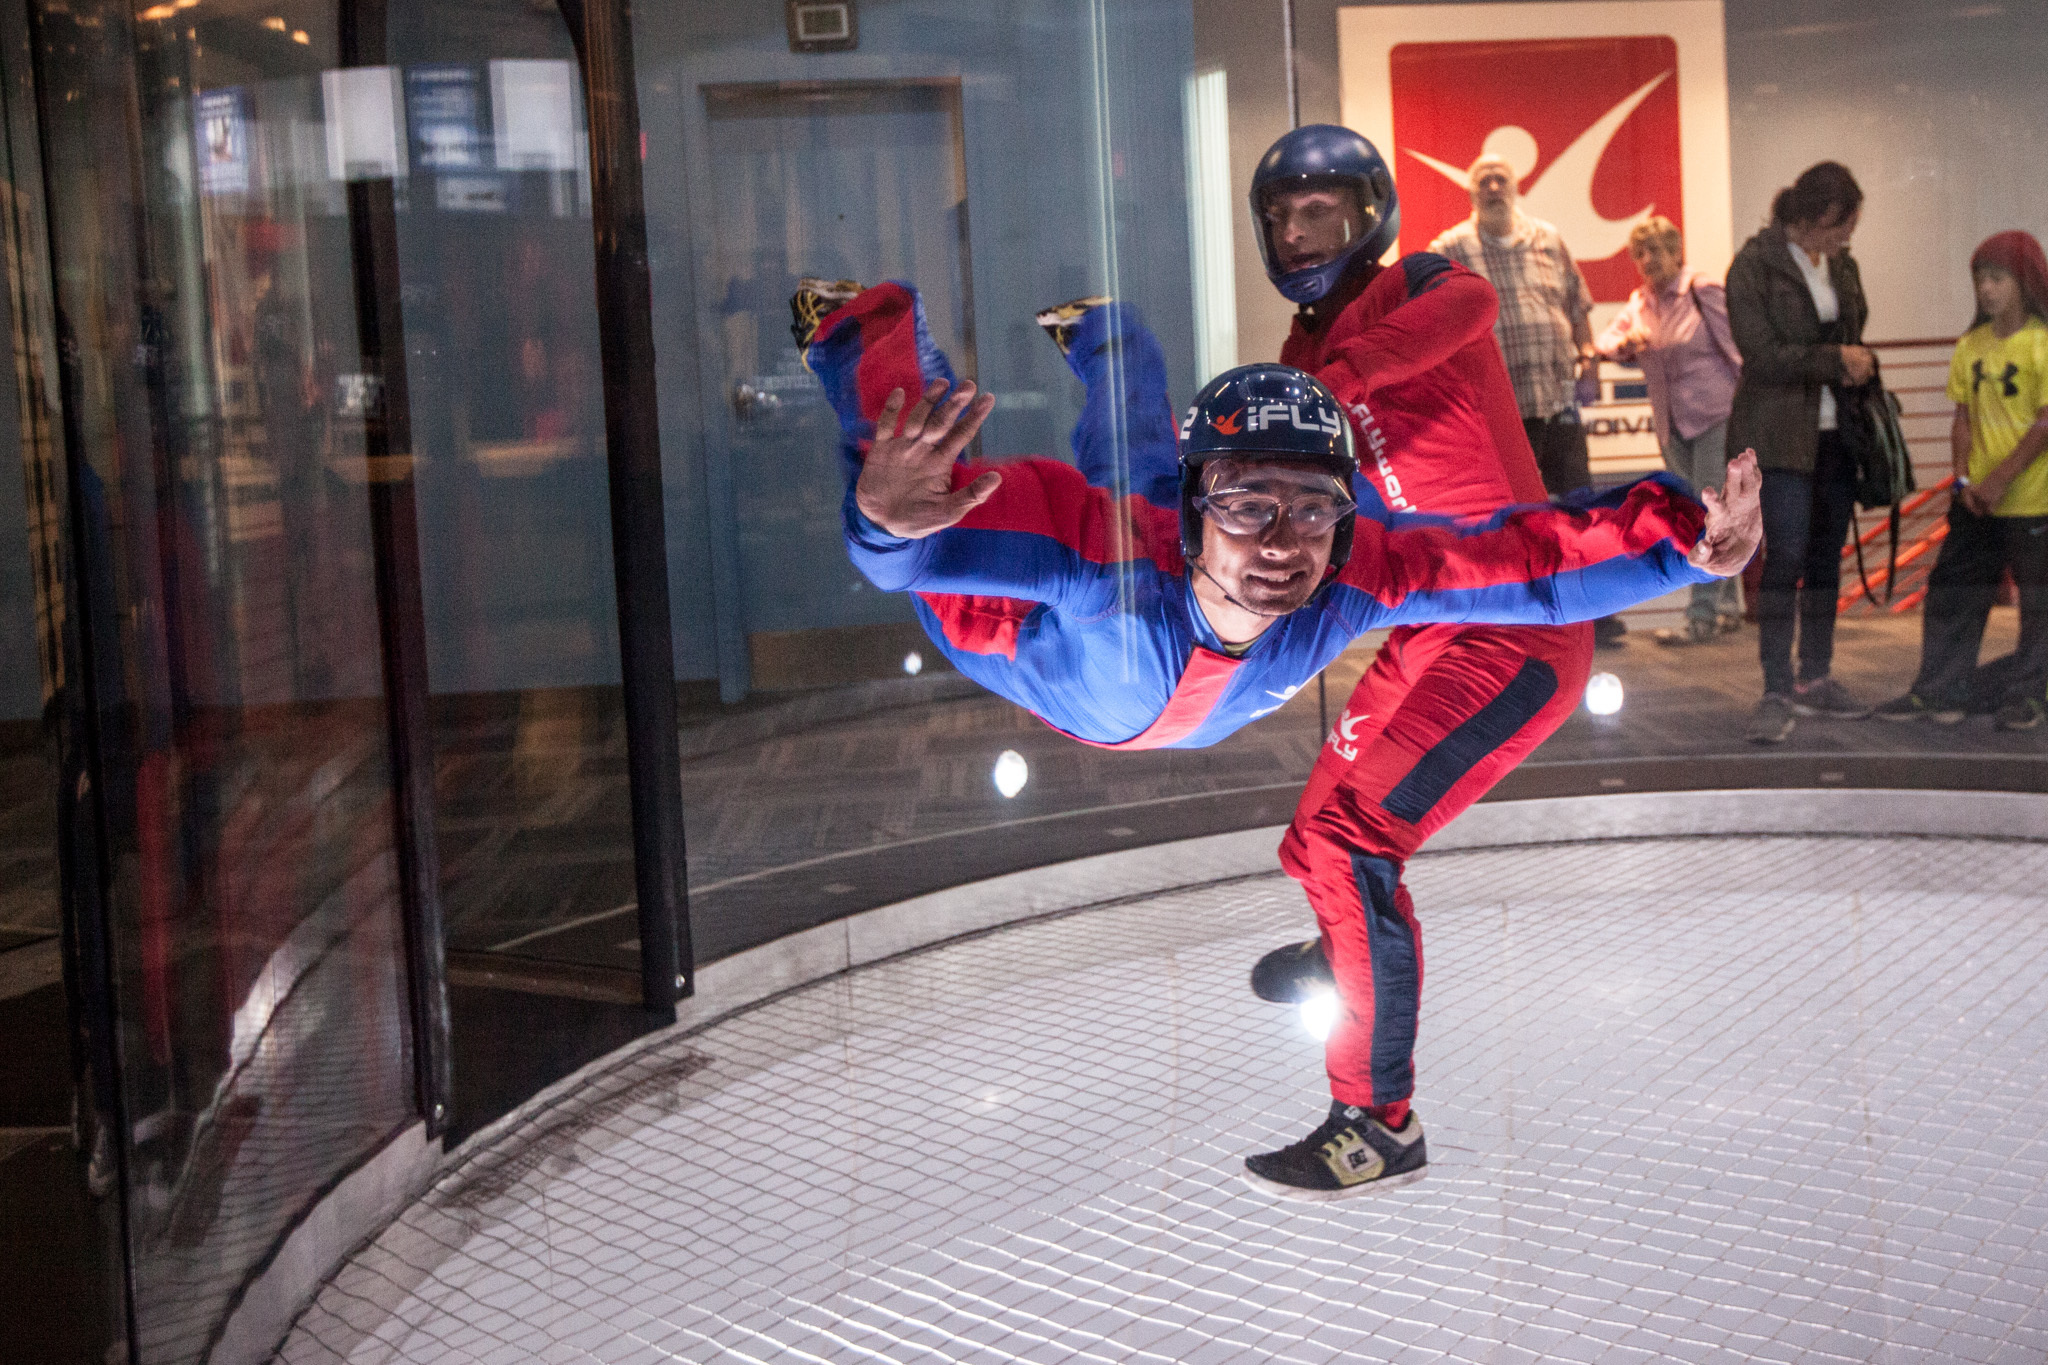 Participants get weightless at the iFly Chicago indoor skydiving vertical wind tunnel.